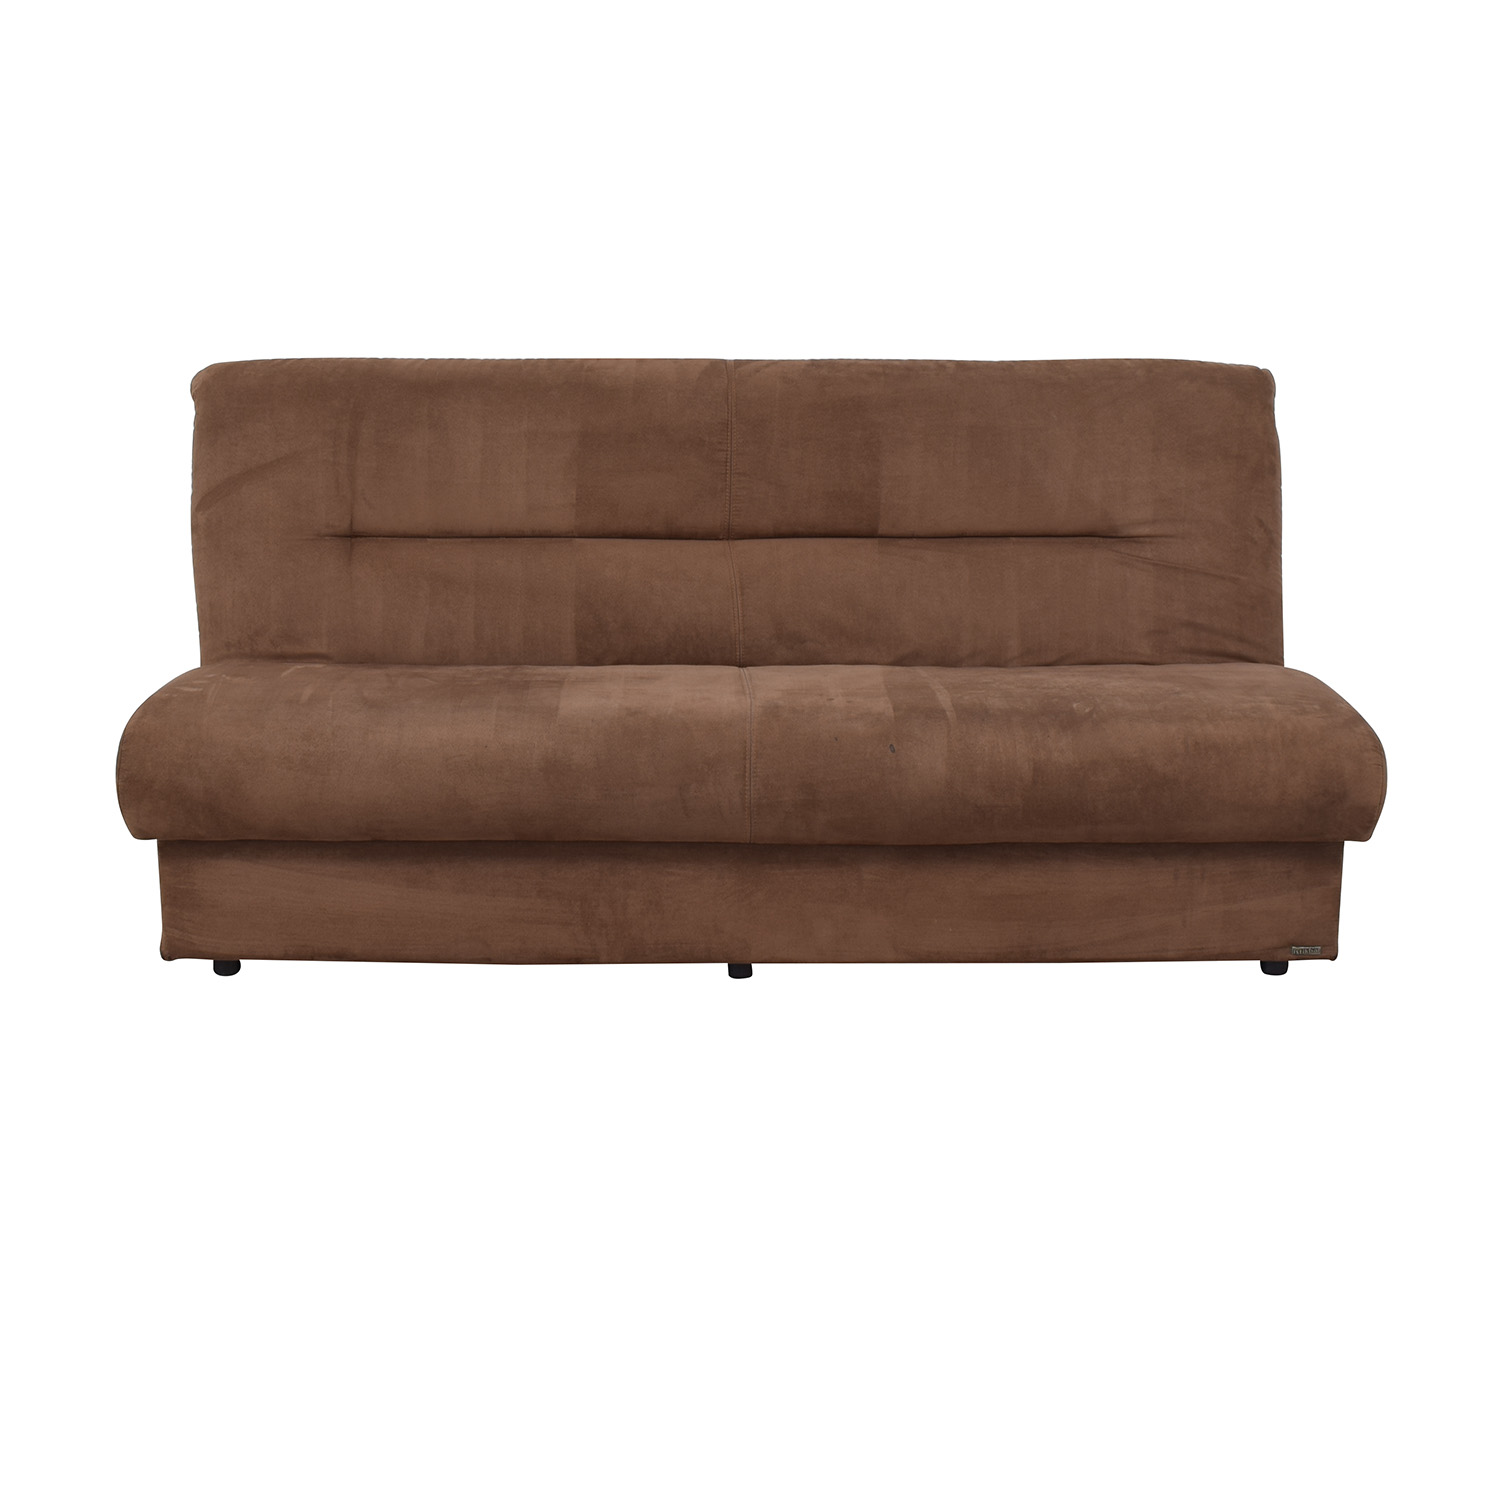 Istikbal Istikbal Furniture Regata Diego Convertible Full Sofa Bed for sale